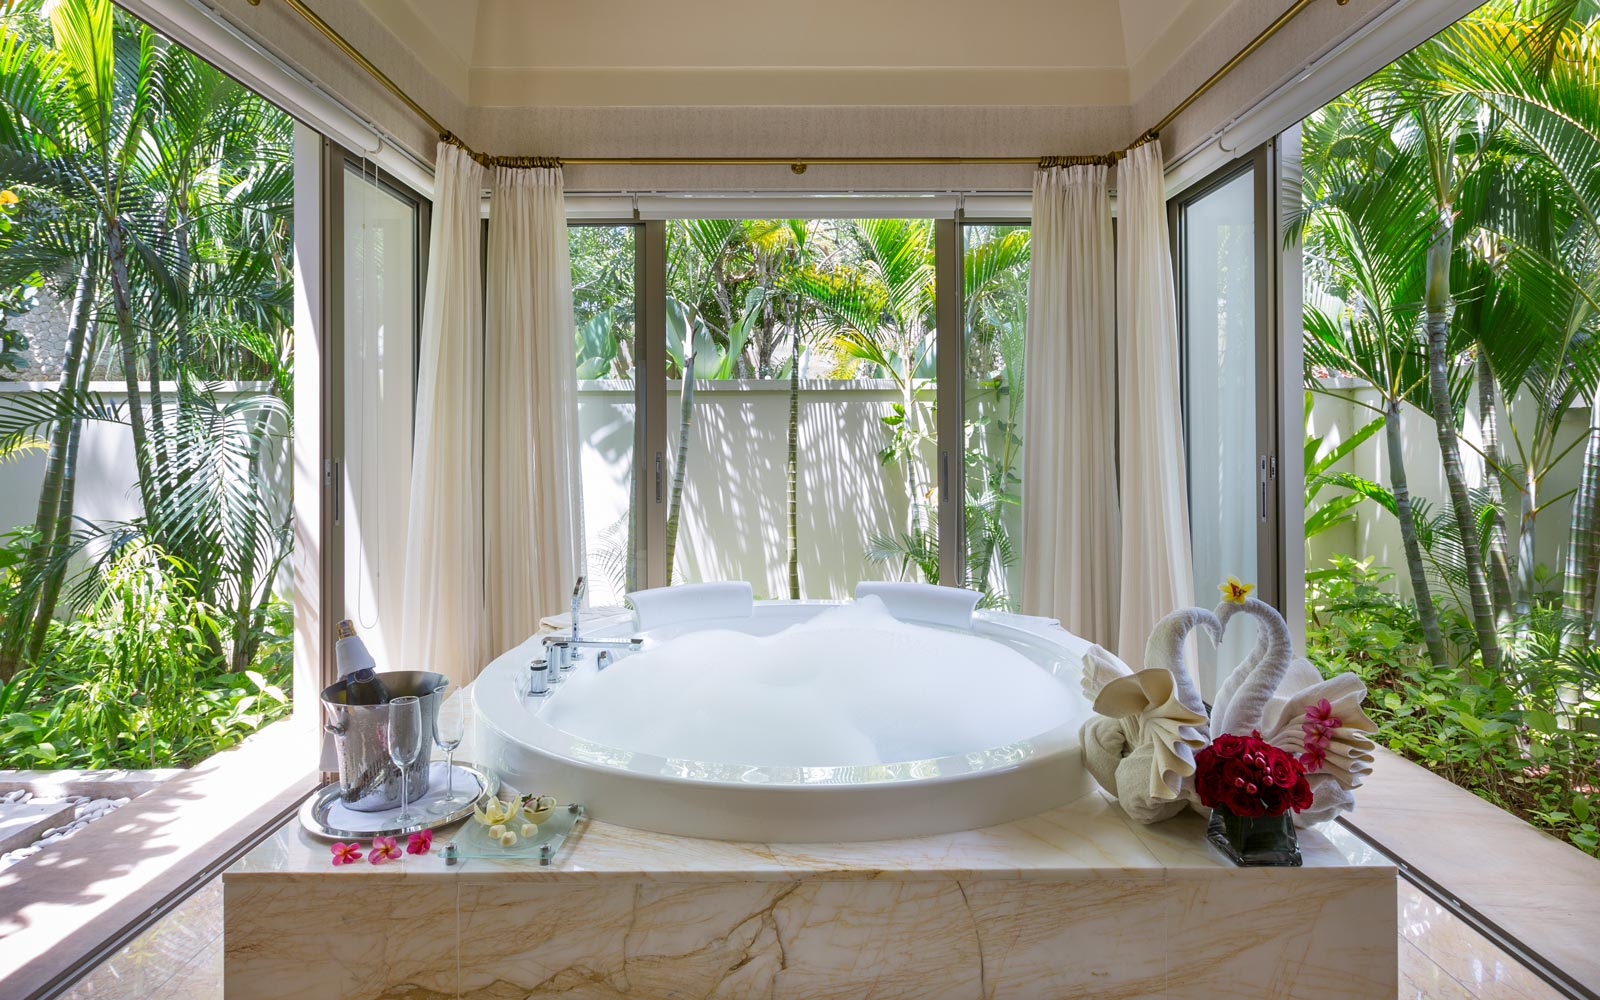 Bathtub with a view at The Mulia, in Bali